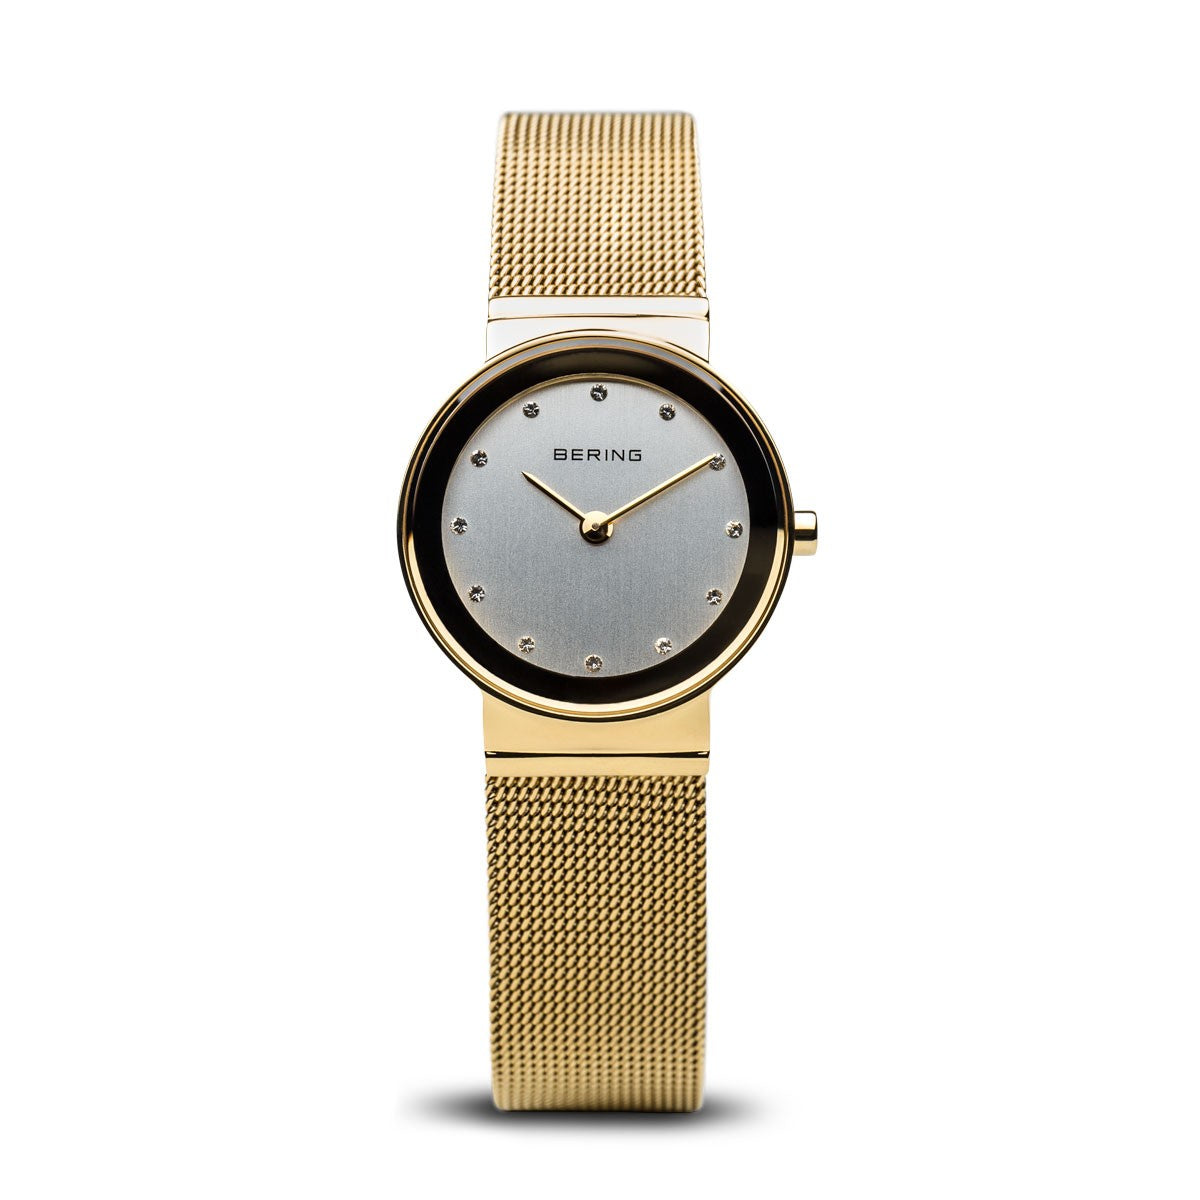 Bering Womens Classic Polished Gold Watch 10126-334 - Robert Openshaw Fine Jewellery